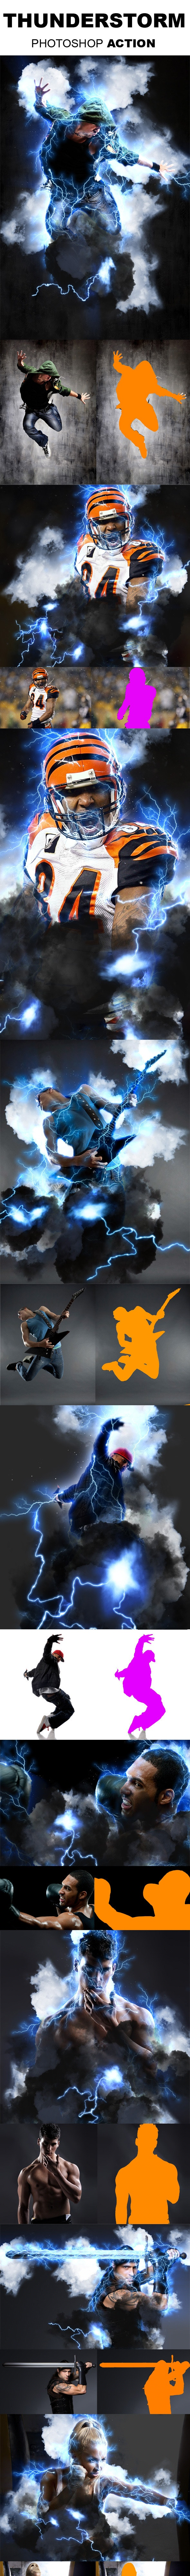 Thunderstorm Photoshop Action - Photo Effects Actions